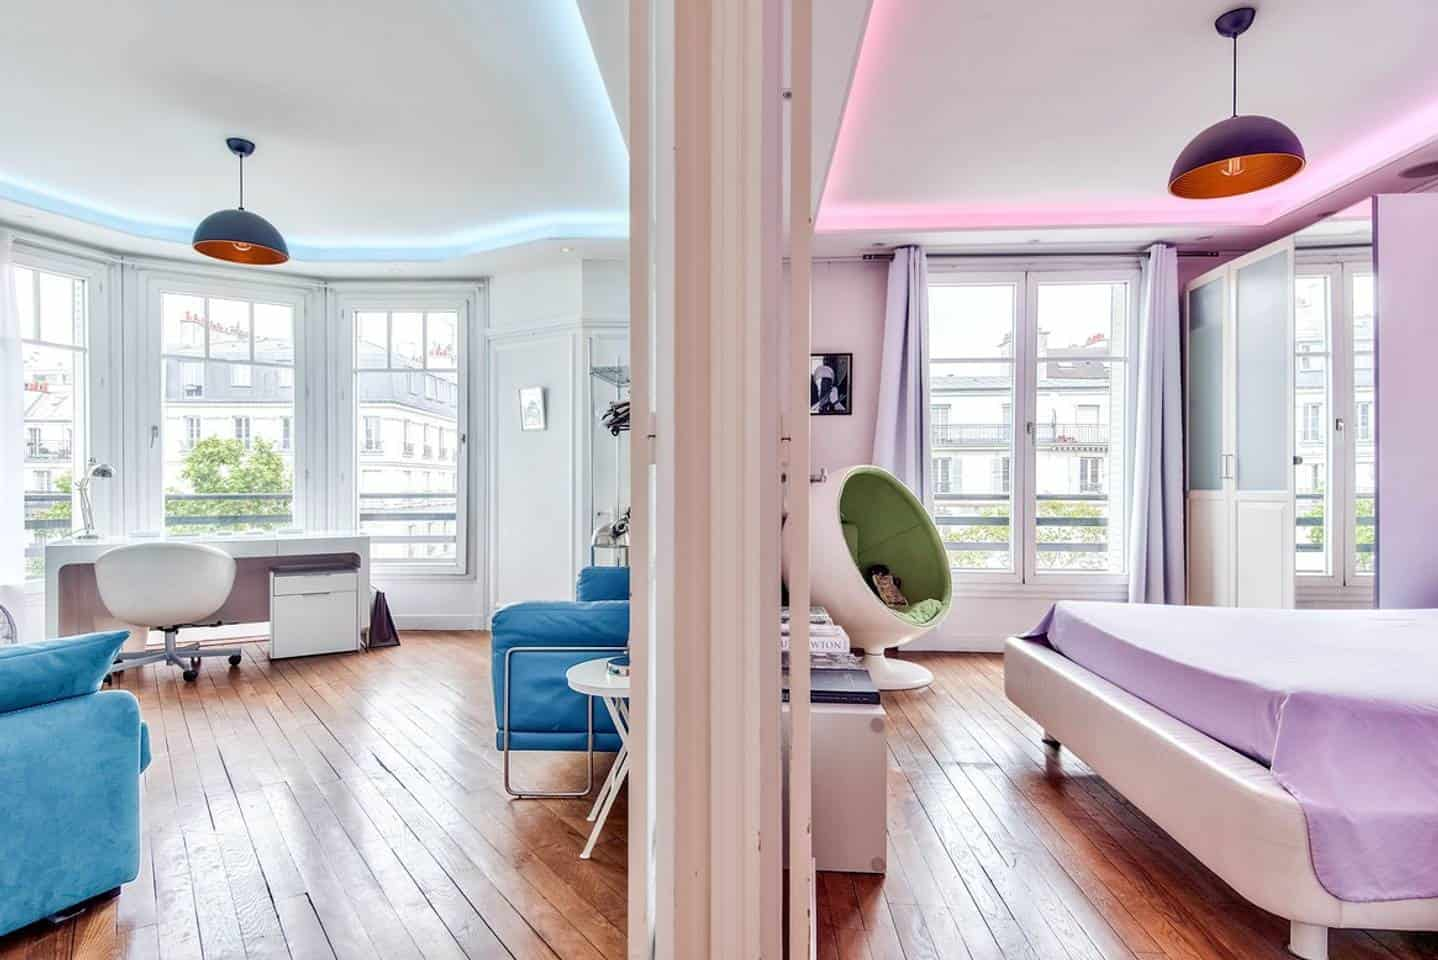 Wow! This Airbnb Paris listing near Marais is dreamy. You have to see the pictures!